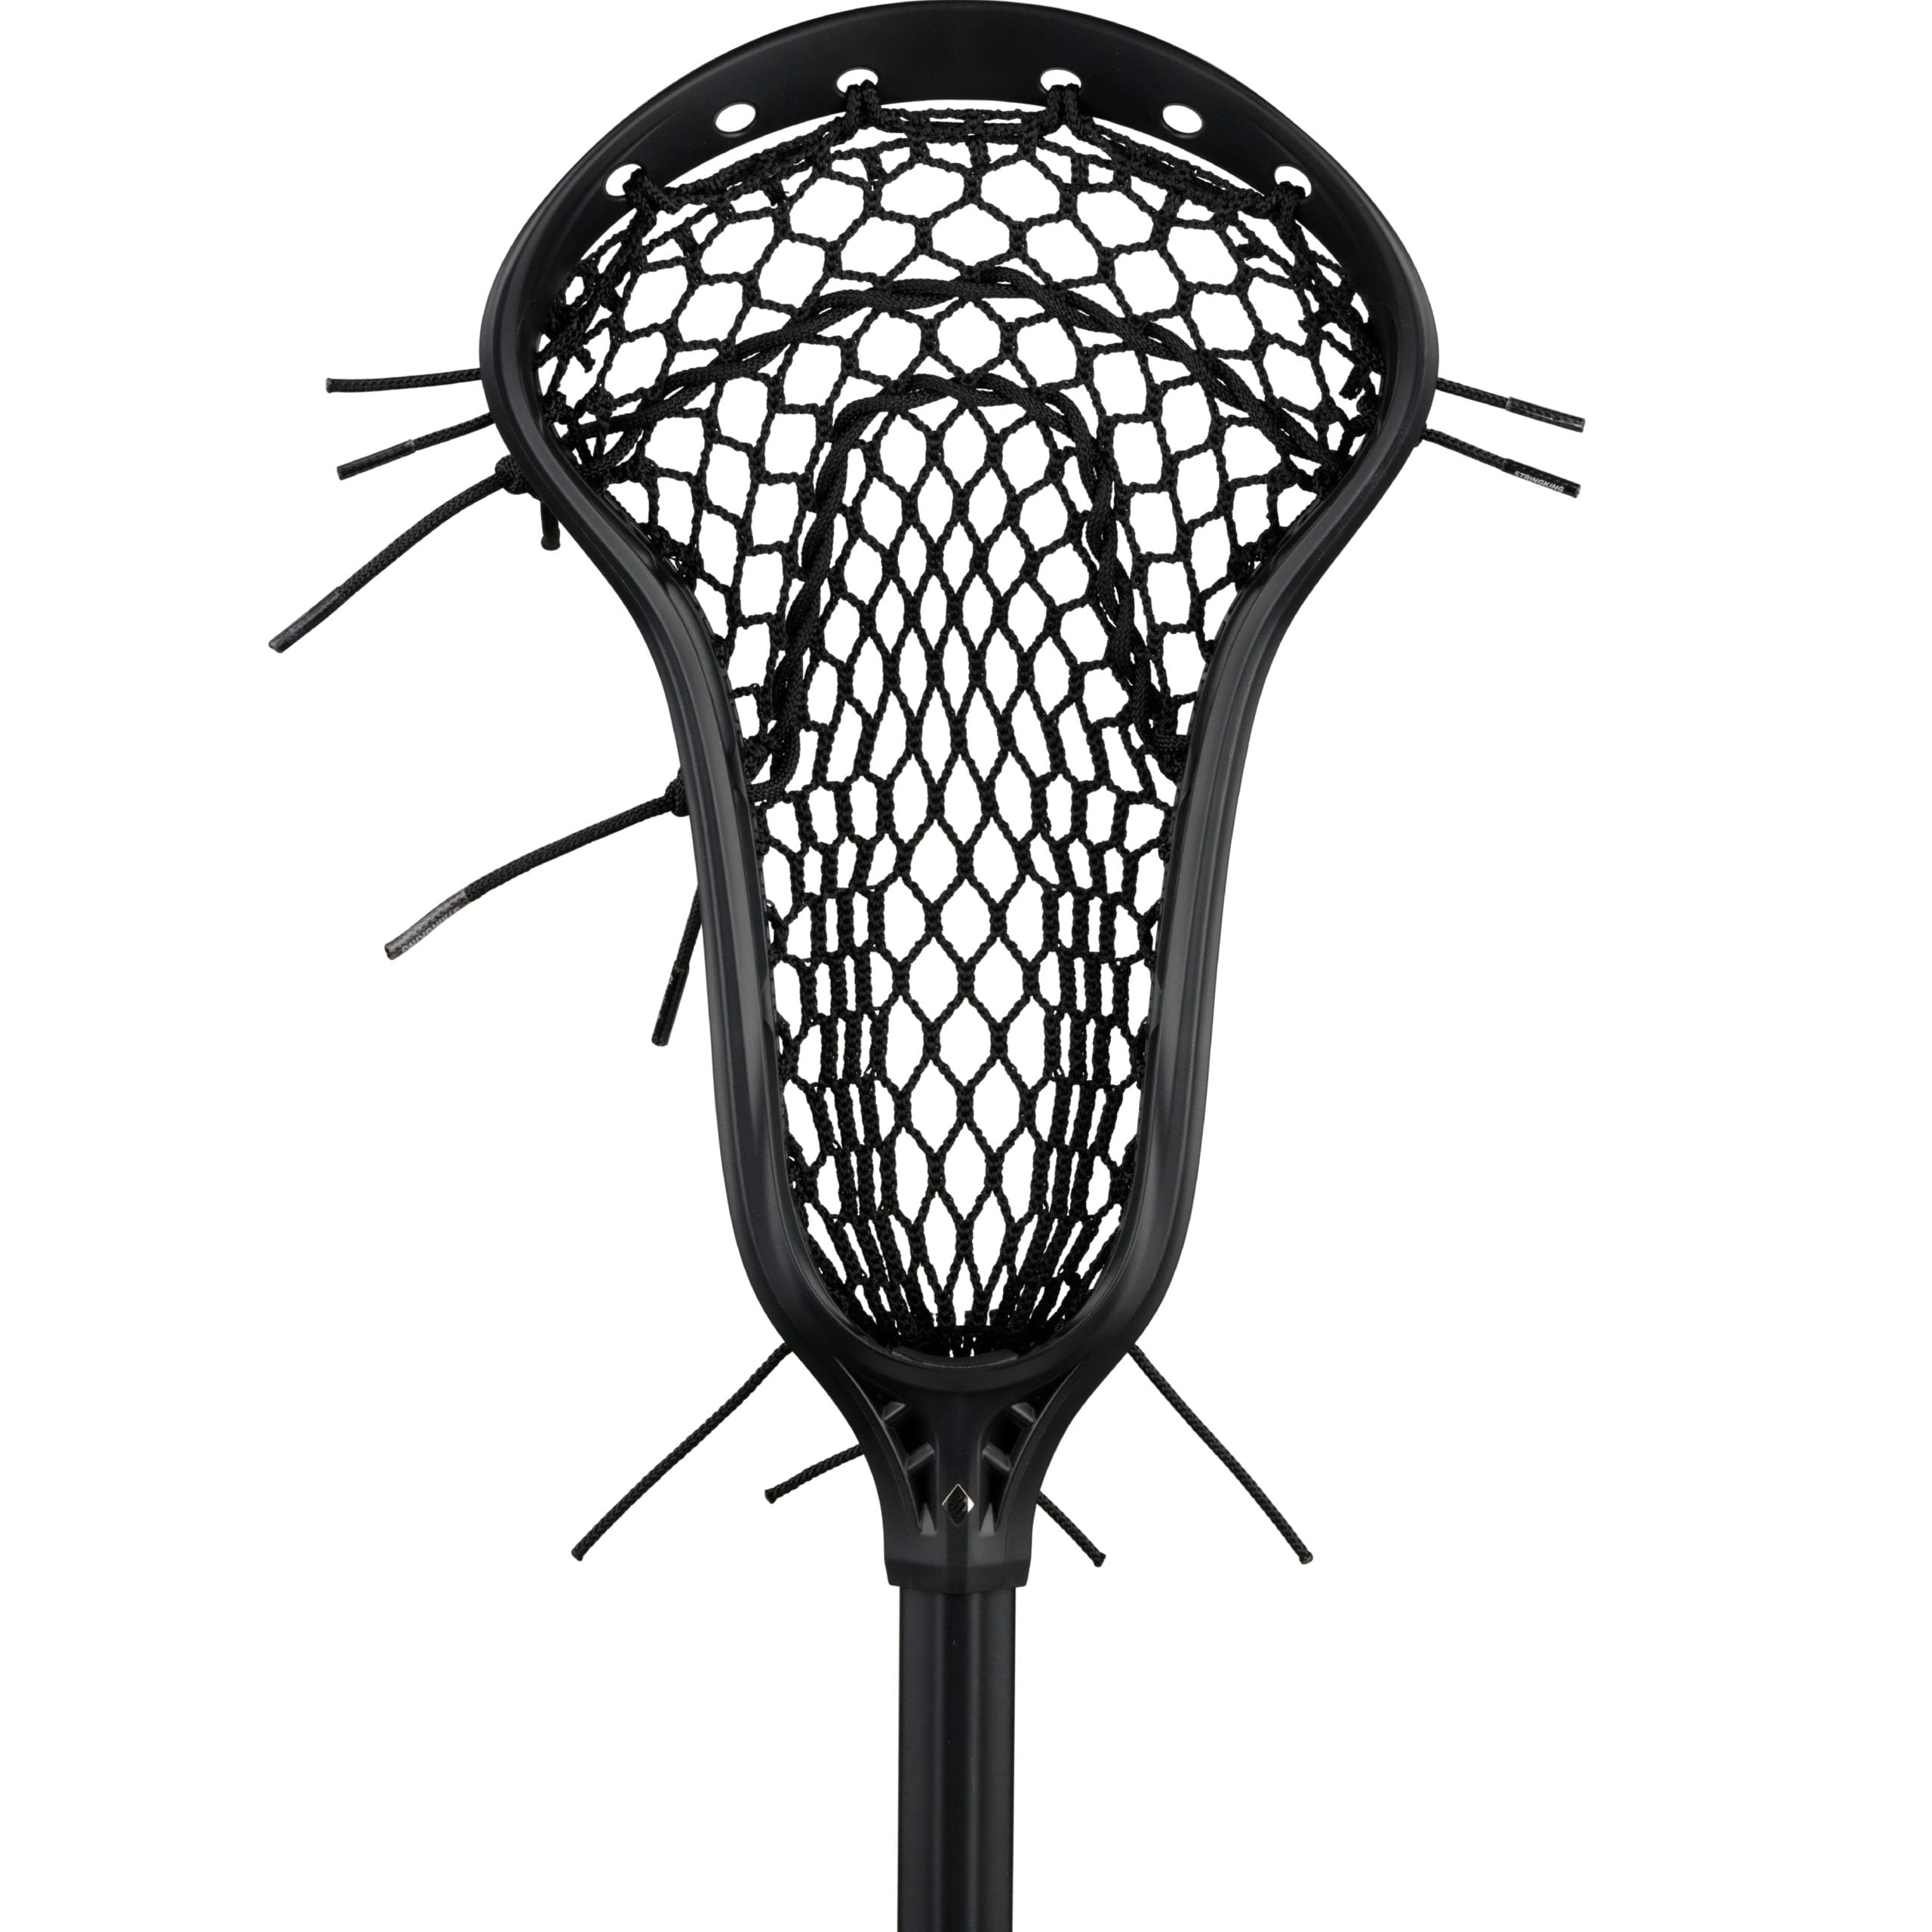 StringKing-Womens-Complete2Pro-Midfield-Face-Strung-Black4000-scaled-1.jpg